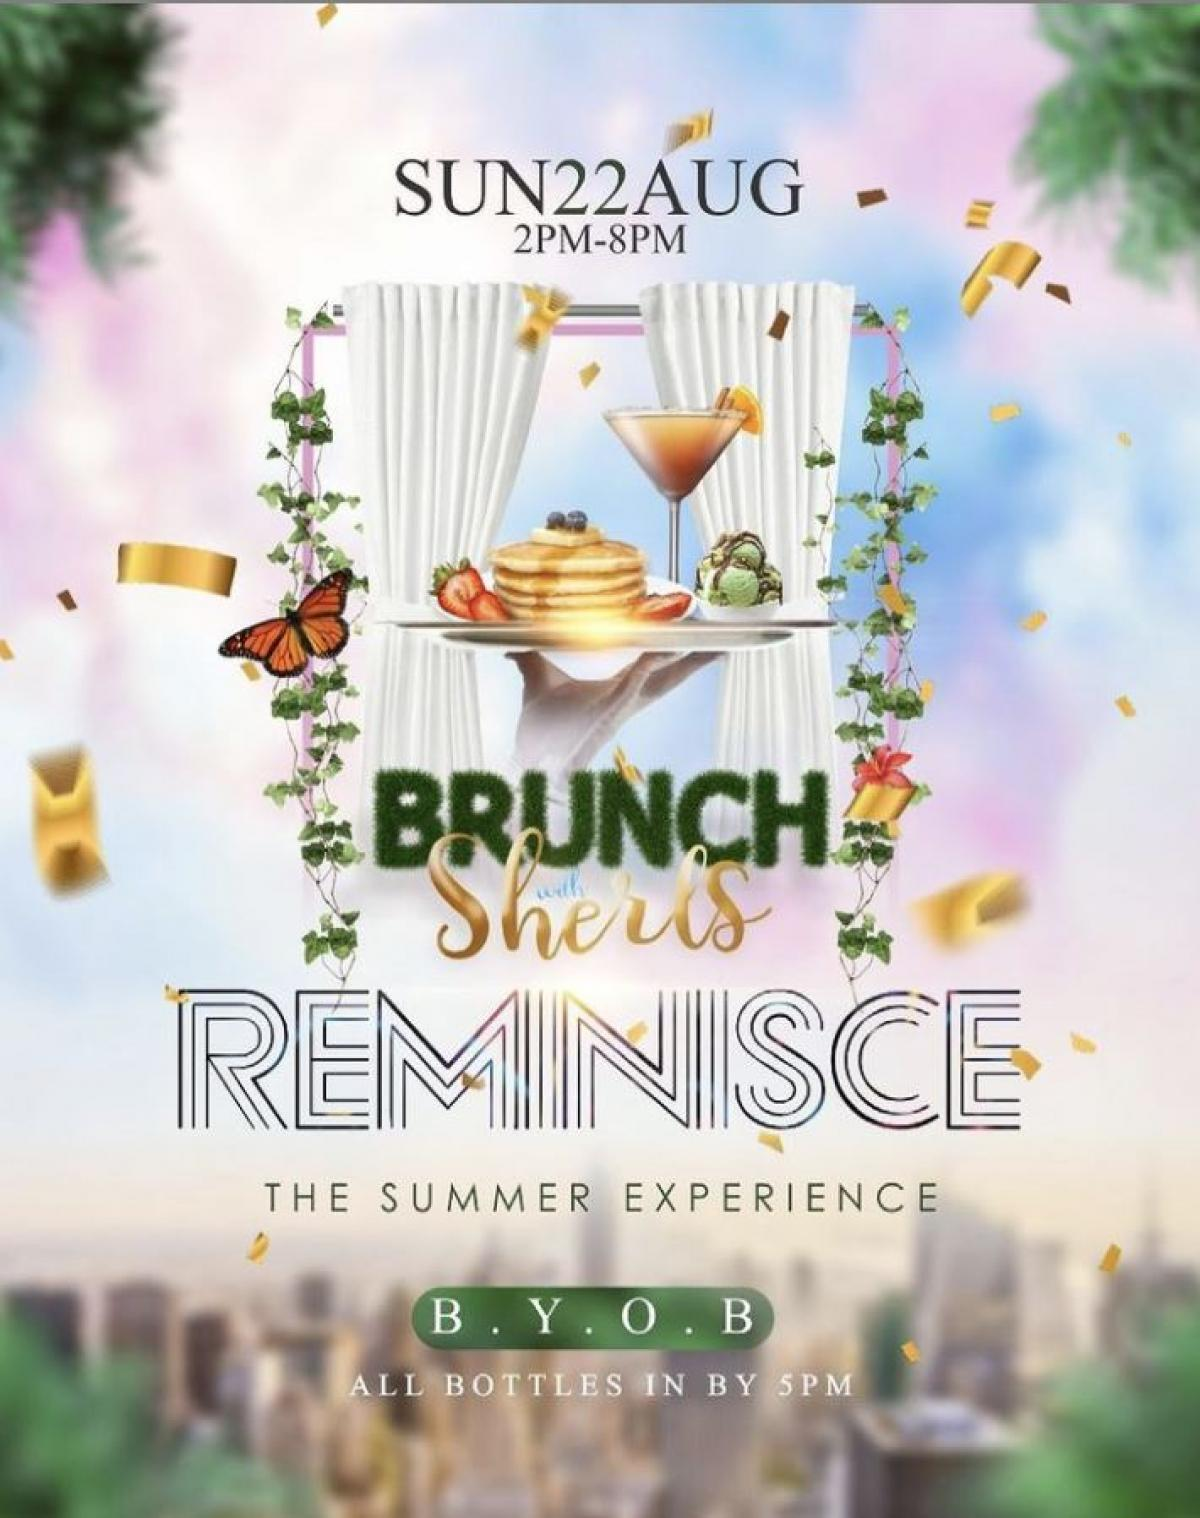 Brunch with Sherls: Reminisce flyer or graphic.